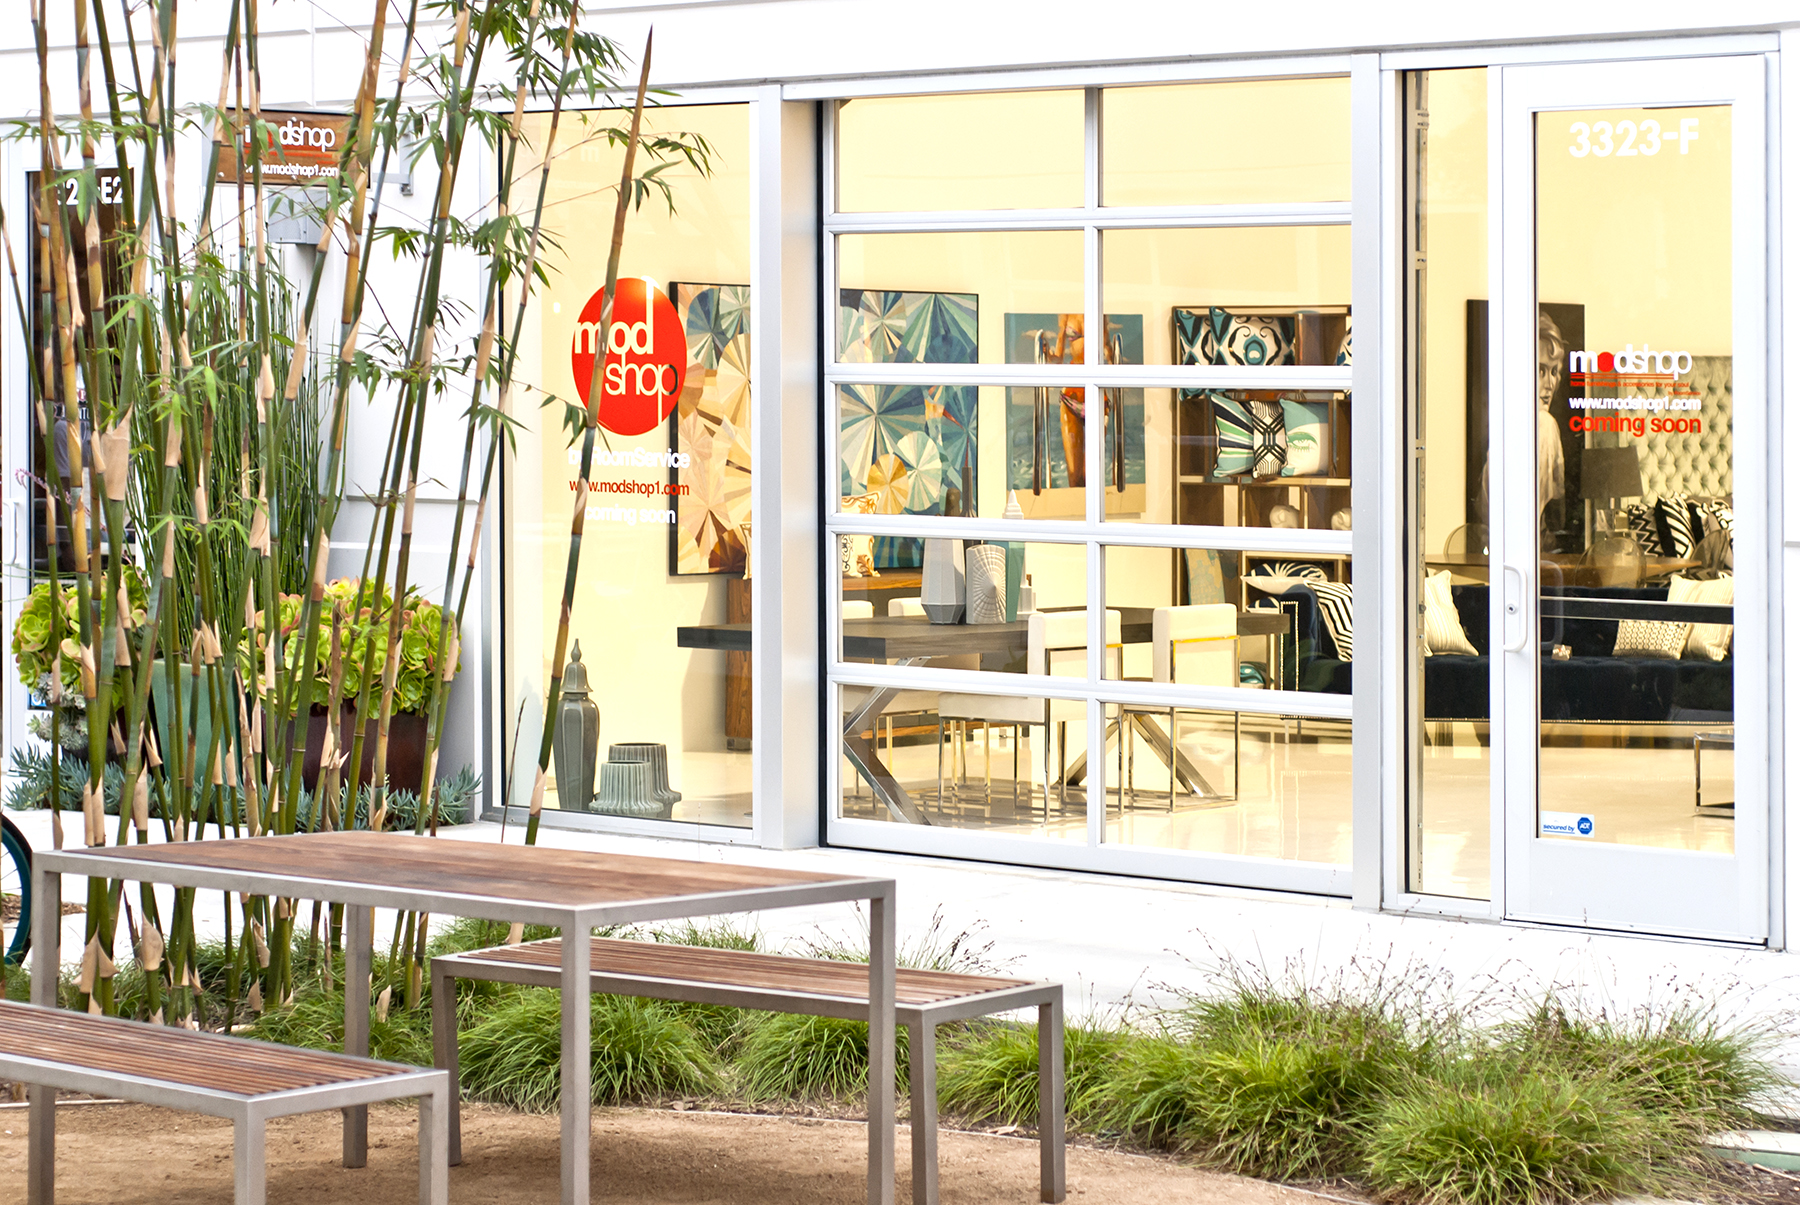 Modern Furniture Orange County modern furniture store in orange county, ca